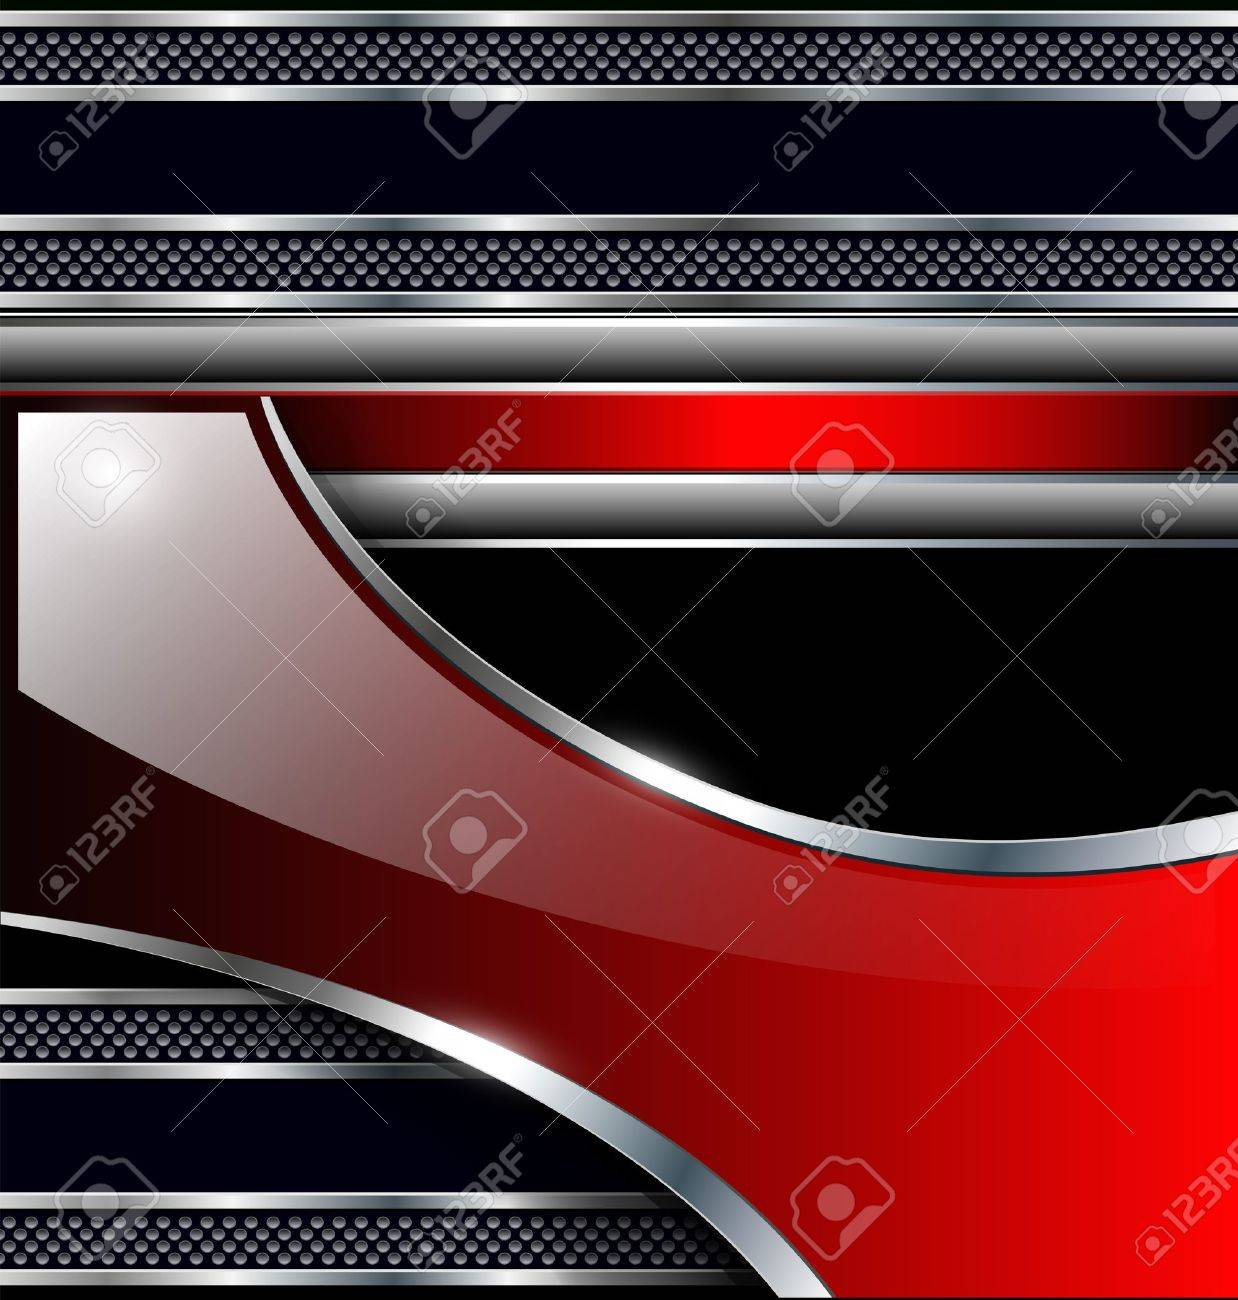 Abstract Background Red Black Abstract Background Black